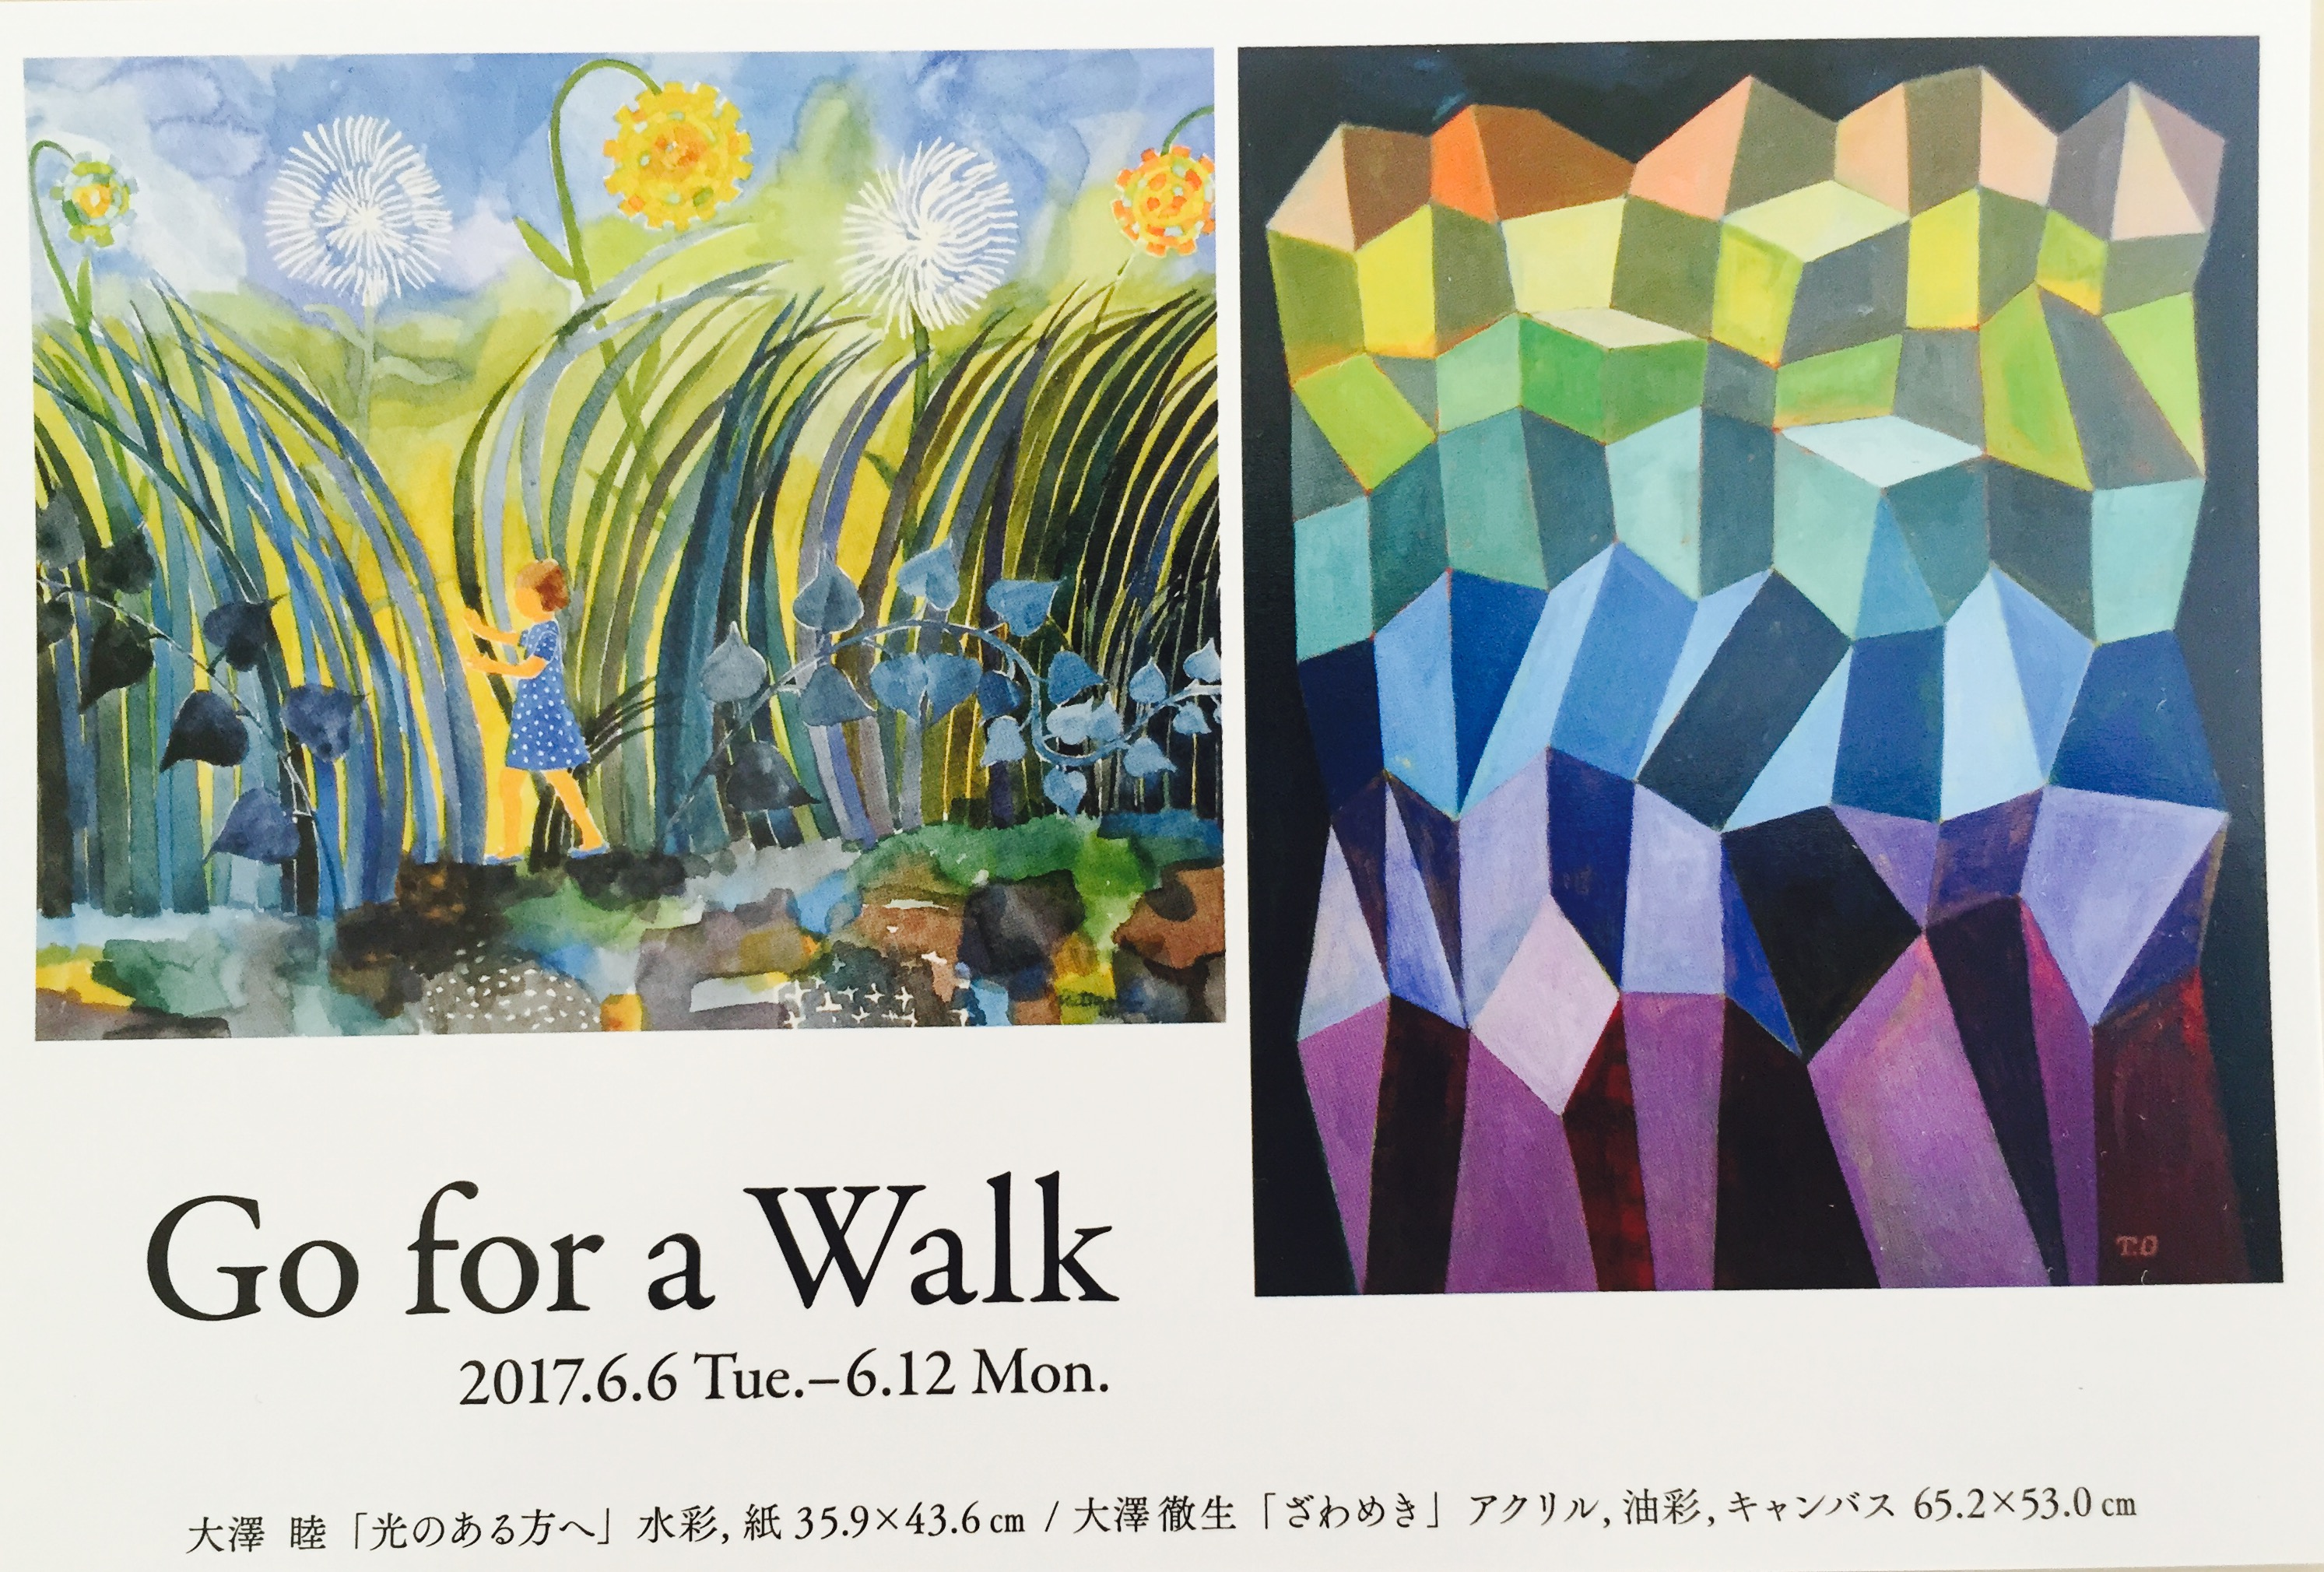 Go for a walk 大澤睦・徹生 二人展